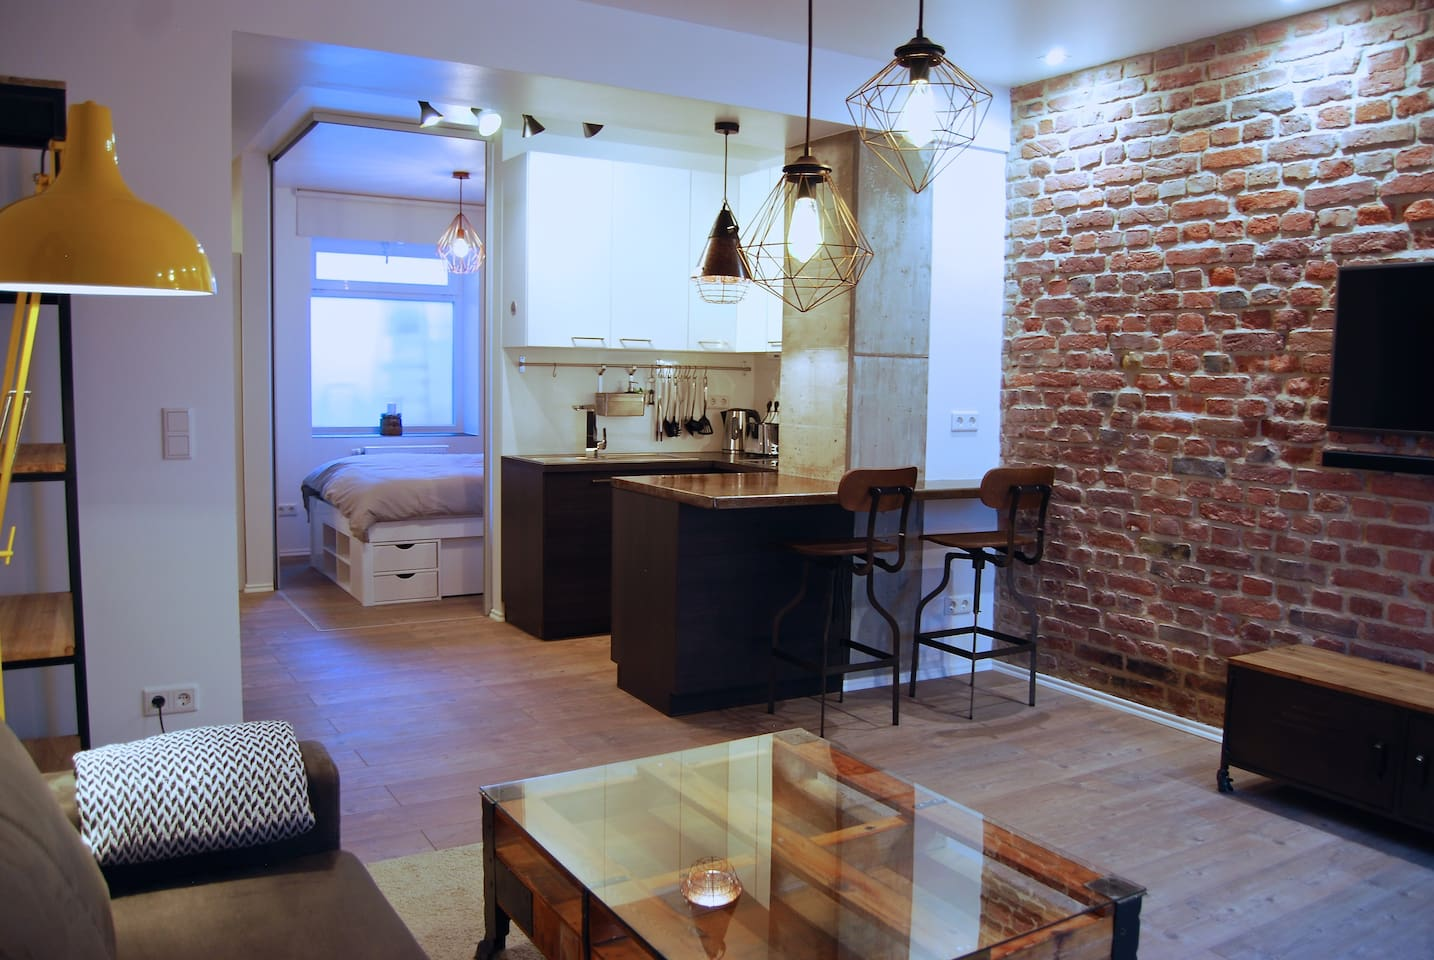 Jordan Suite - brand new 40 m2 Loft Style executive furnished apartment in the heart of Düsseldorf.  Fully equipped kitchen, rain shower, compact washing machine, ironing equipment, bedroom with sliding glass walls. WIFI, HD TV with sound bar and sub woofer.